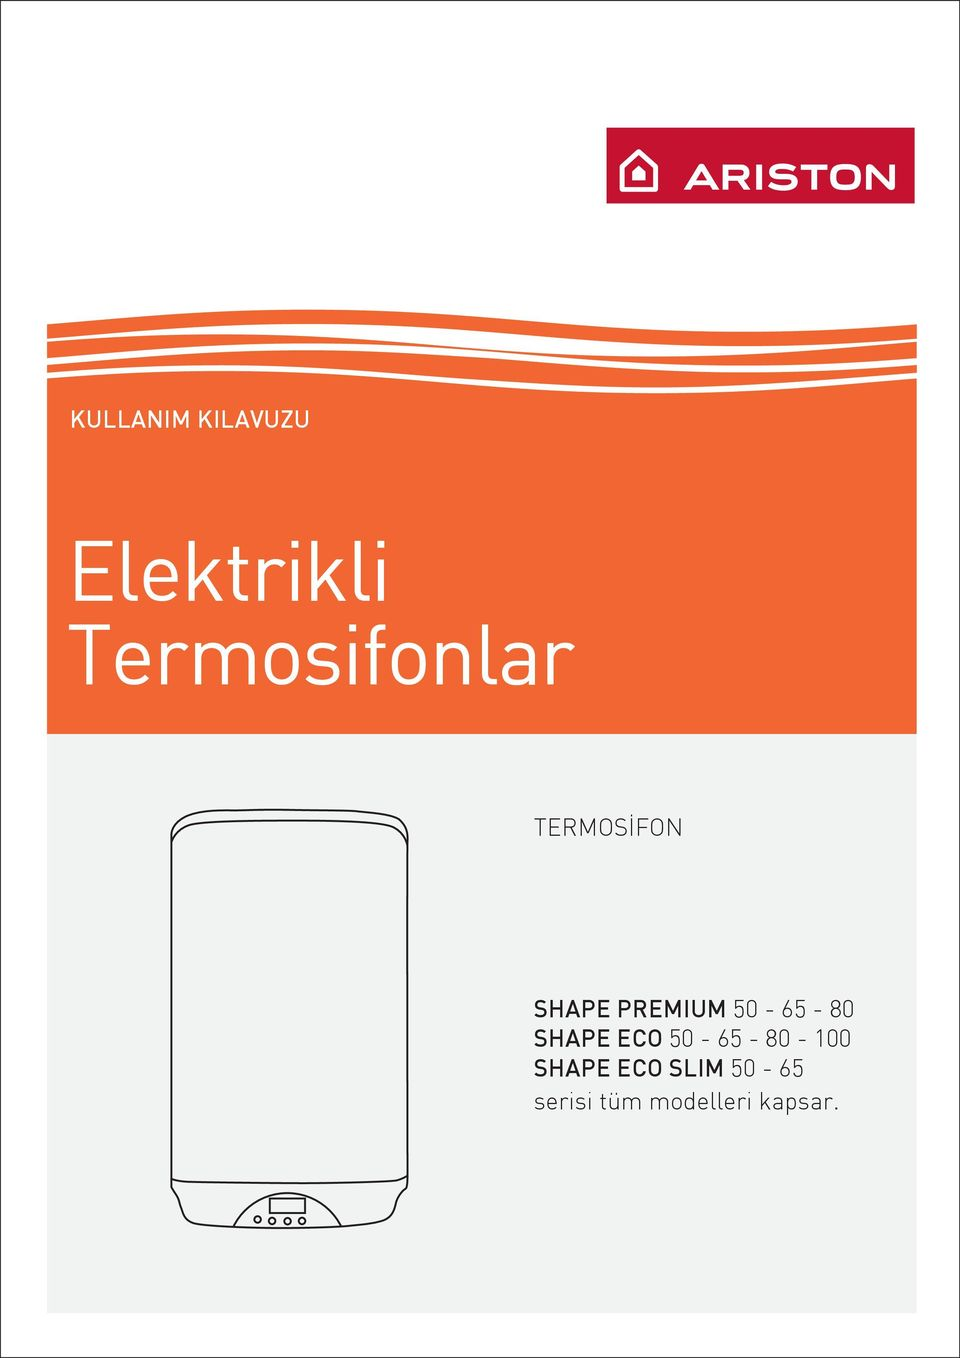 PREMIUM 50-65 - SHAPE ECO 50-65 - -